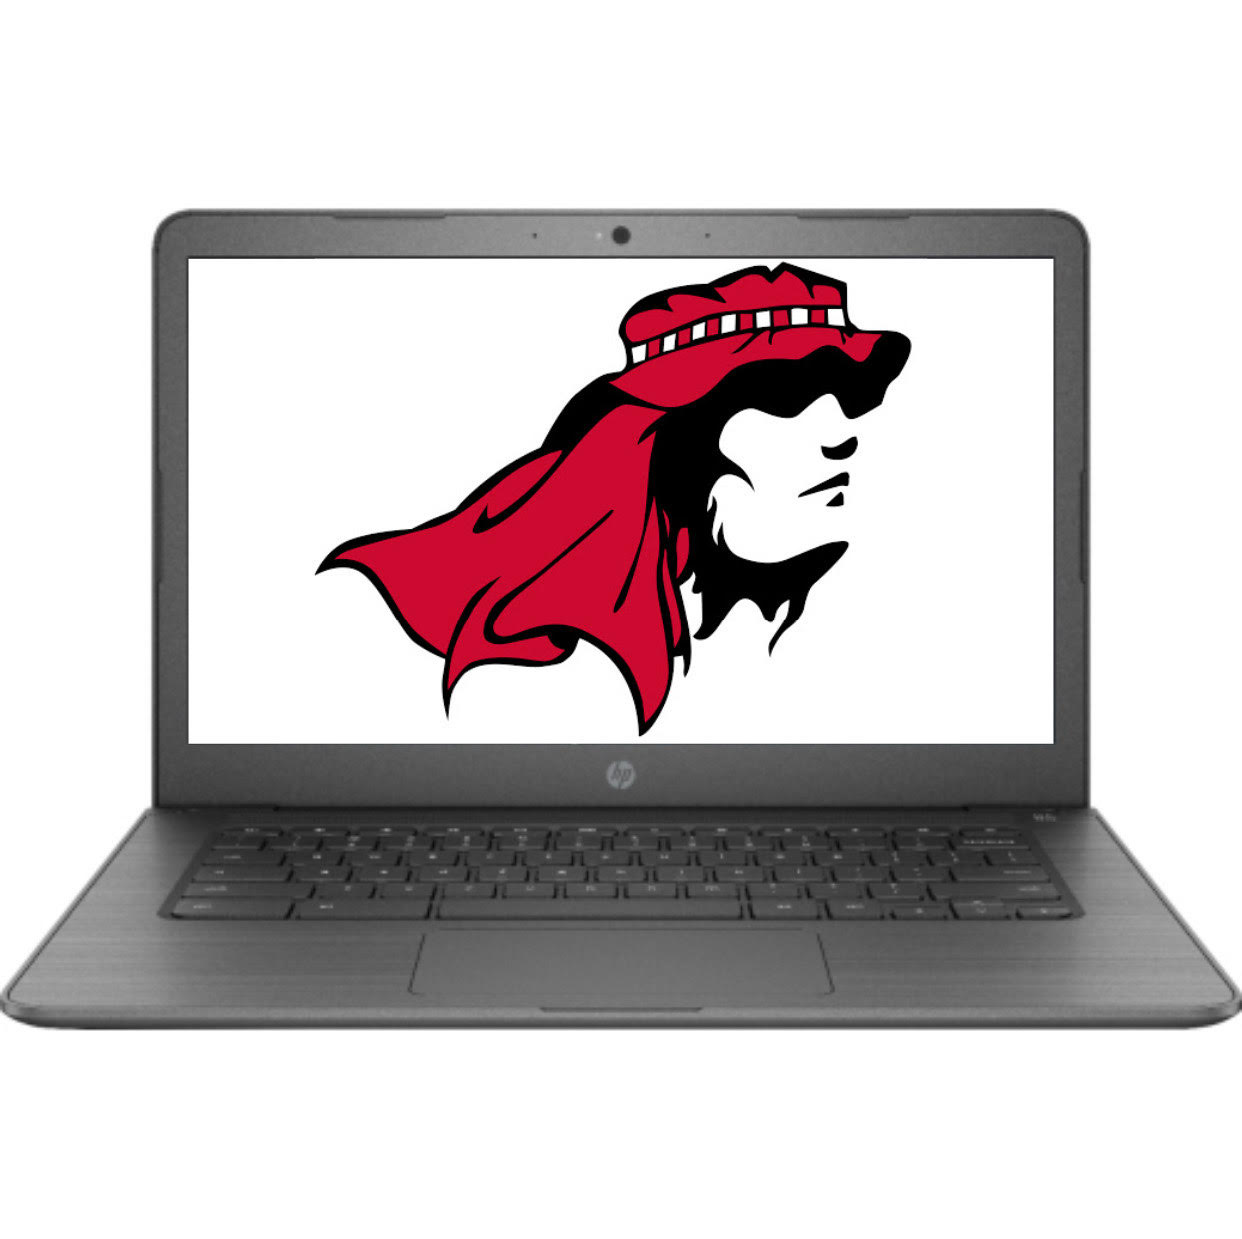 Hollywood High lets students take chromebooks home